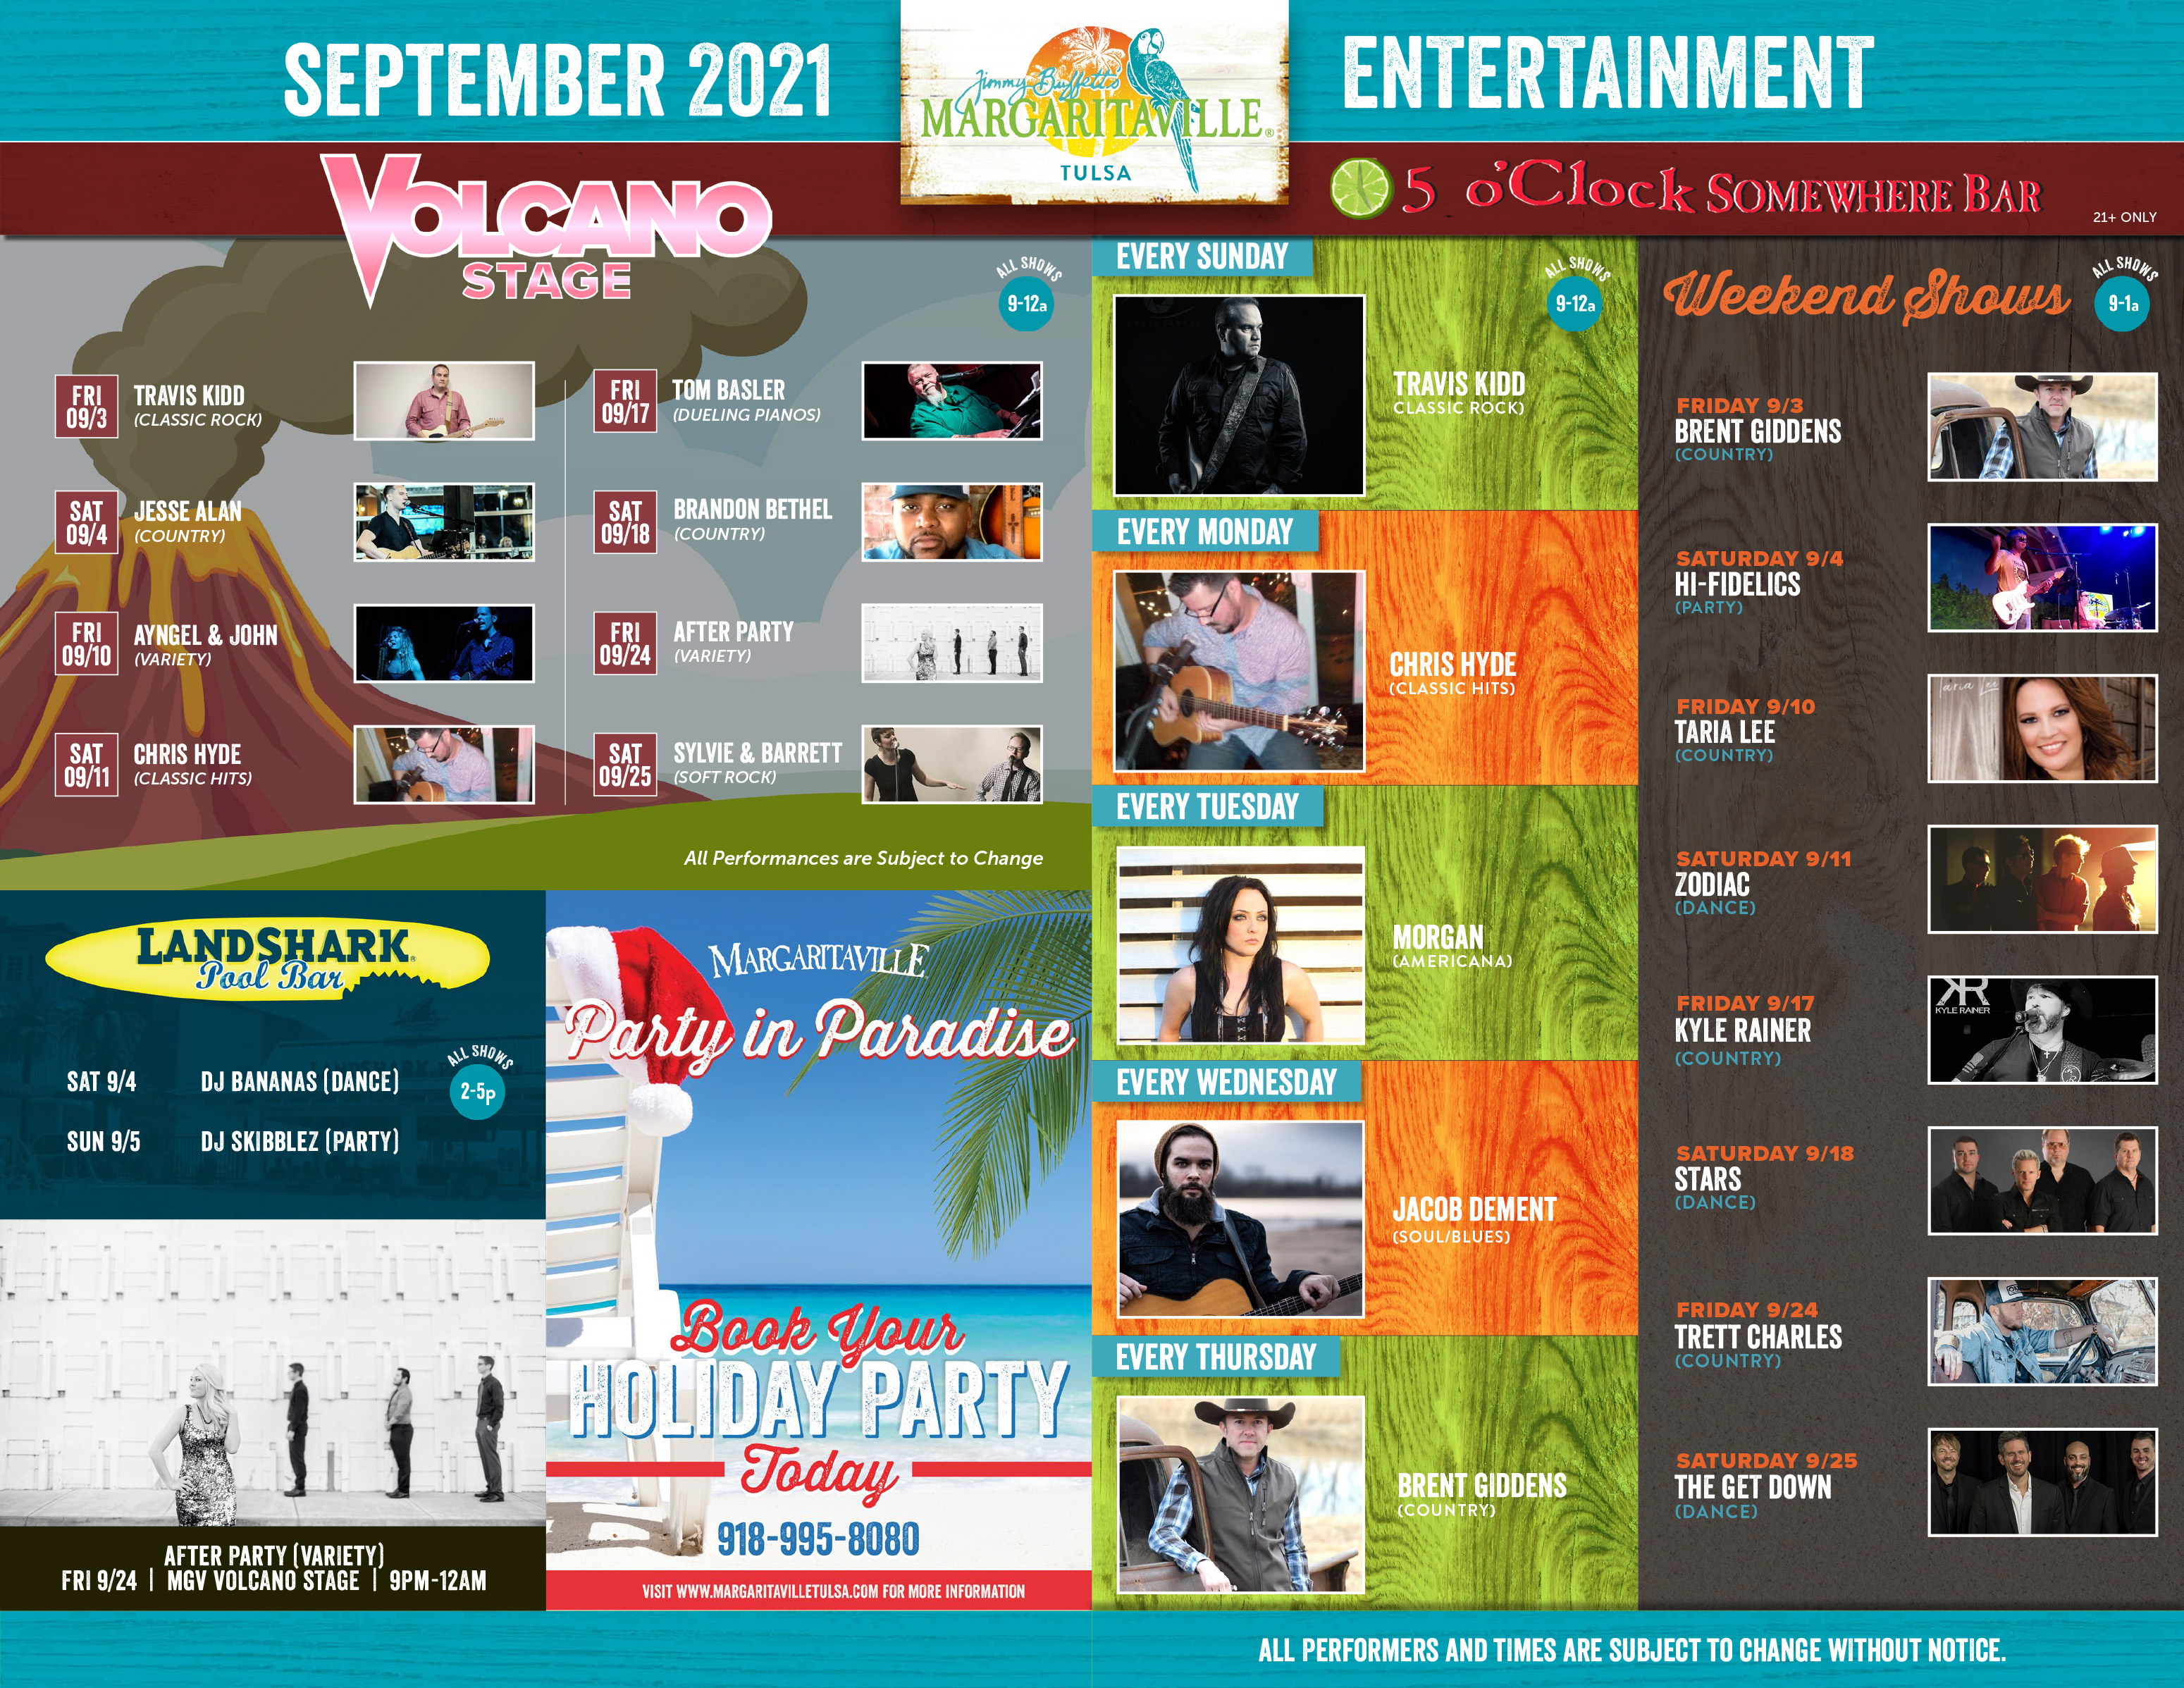 Margaritaville Tulsa September 2021 Calendar of Events. Visually impaired customers please call for assistance or read next tab